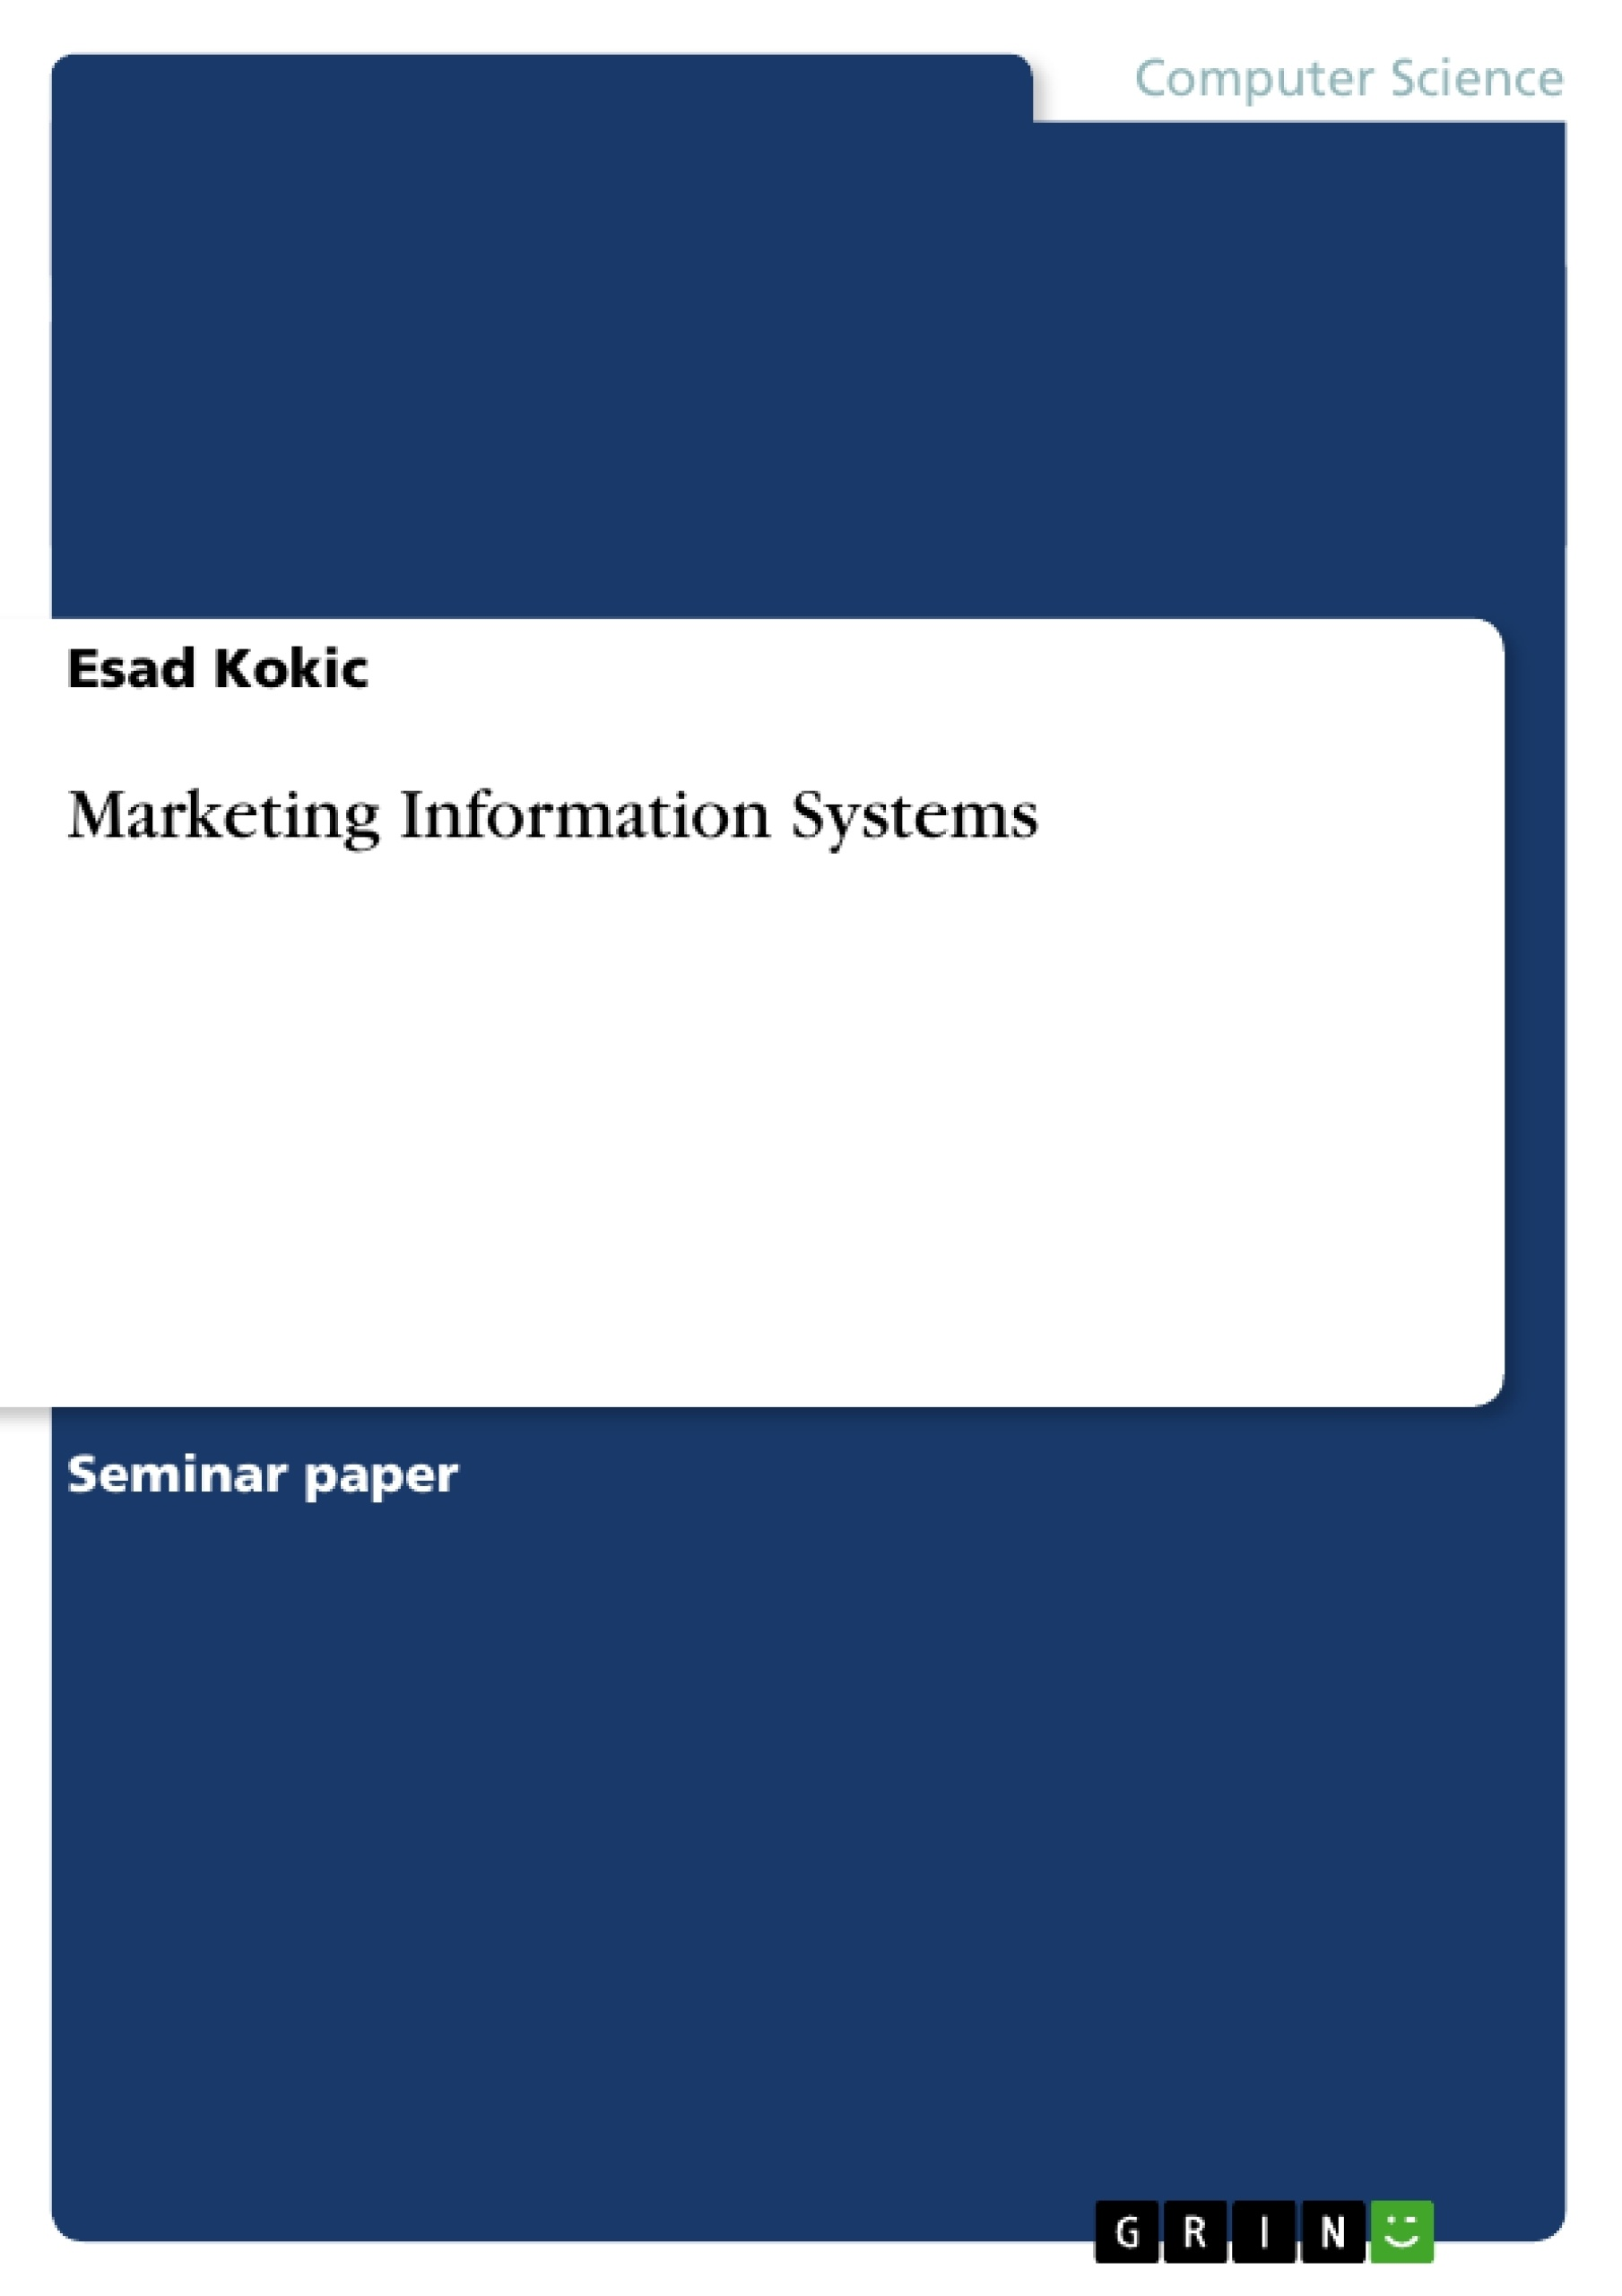 thesis information technology marketing